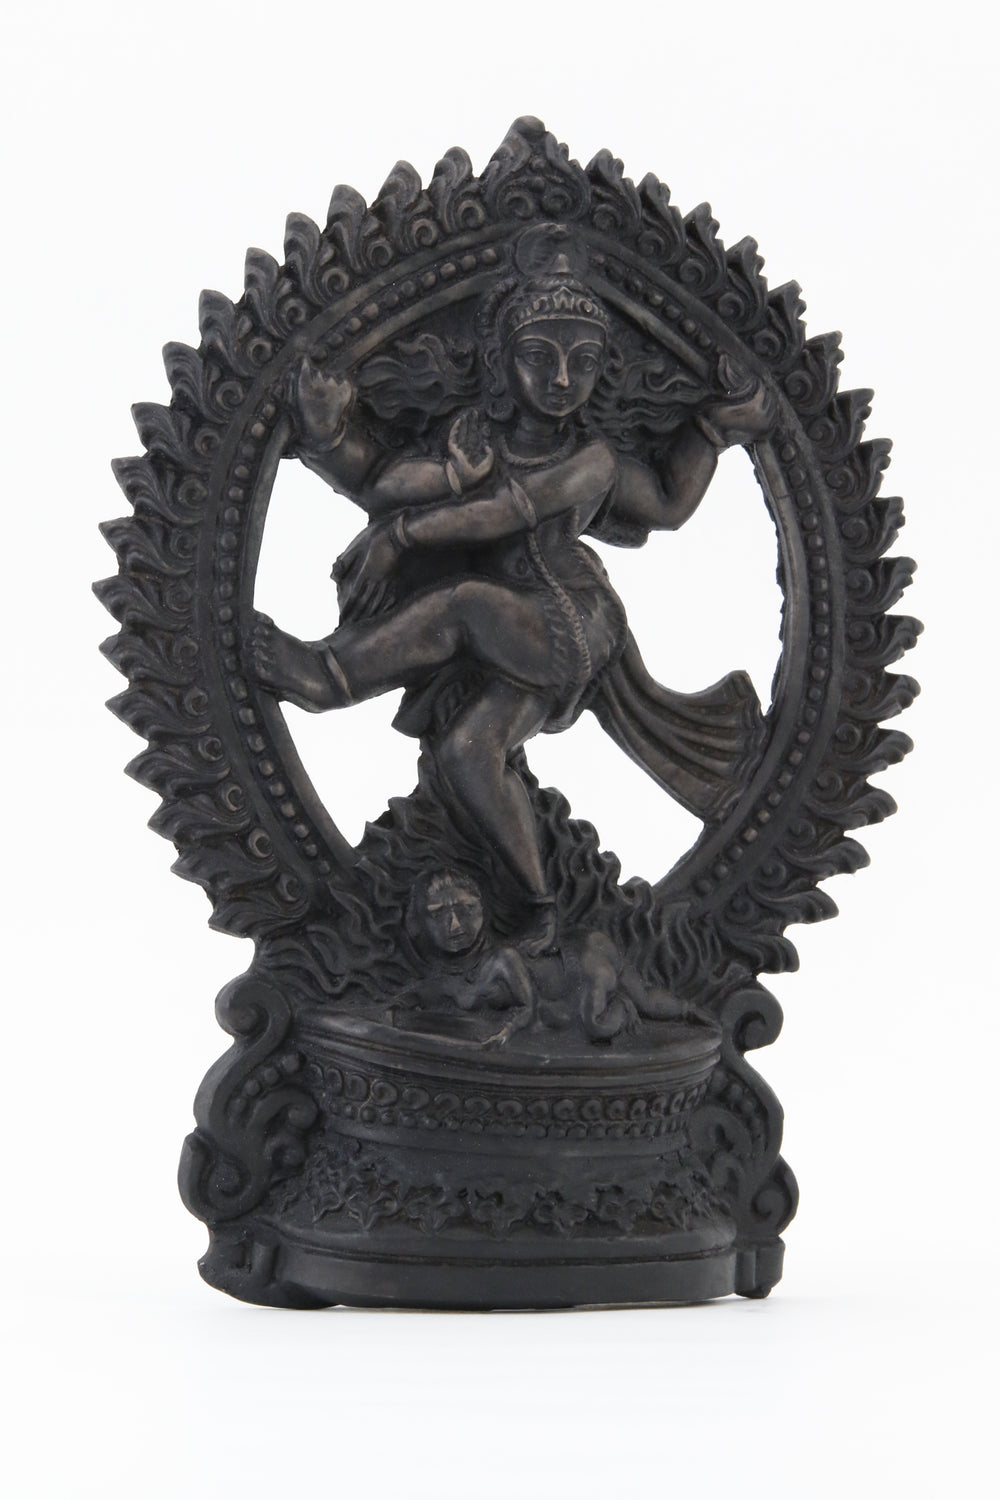 SHIVA DANCING POSE STATUE DARK SIDE 1 VIEW